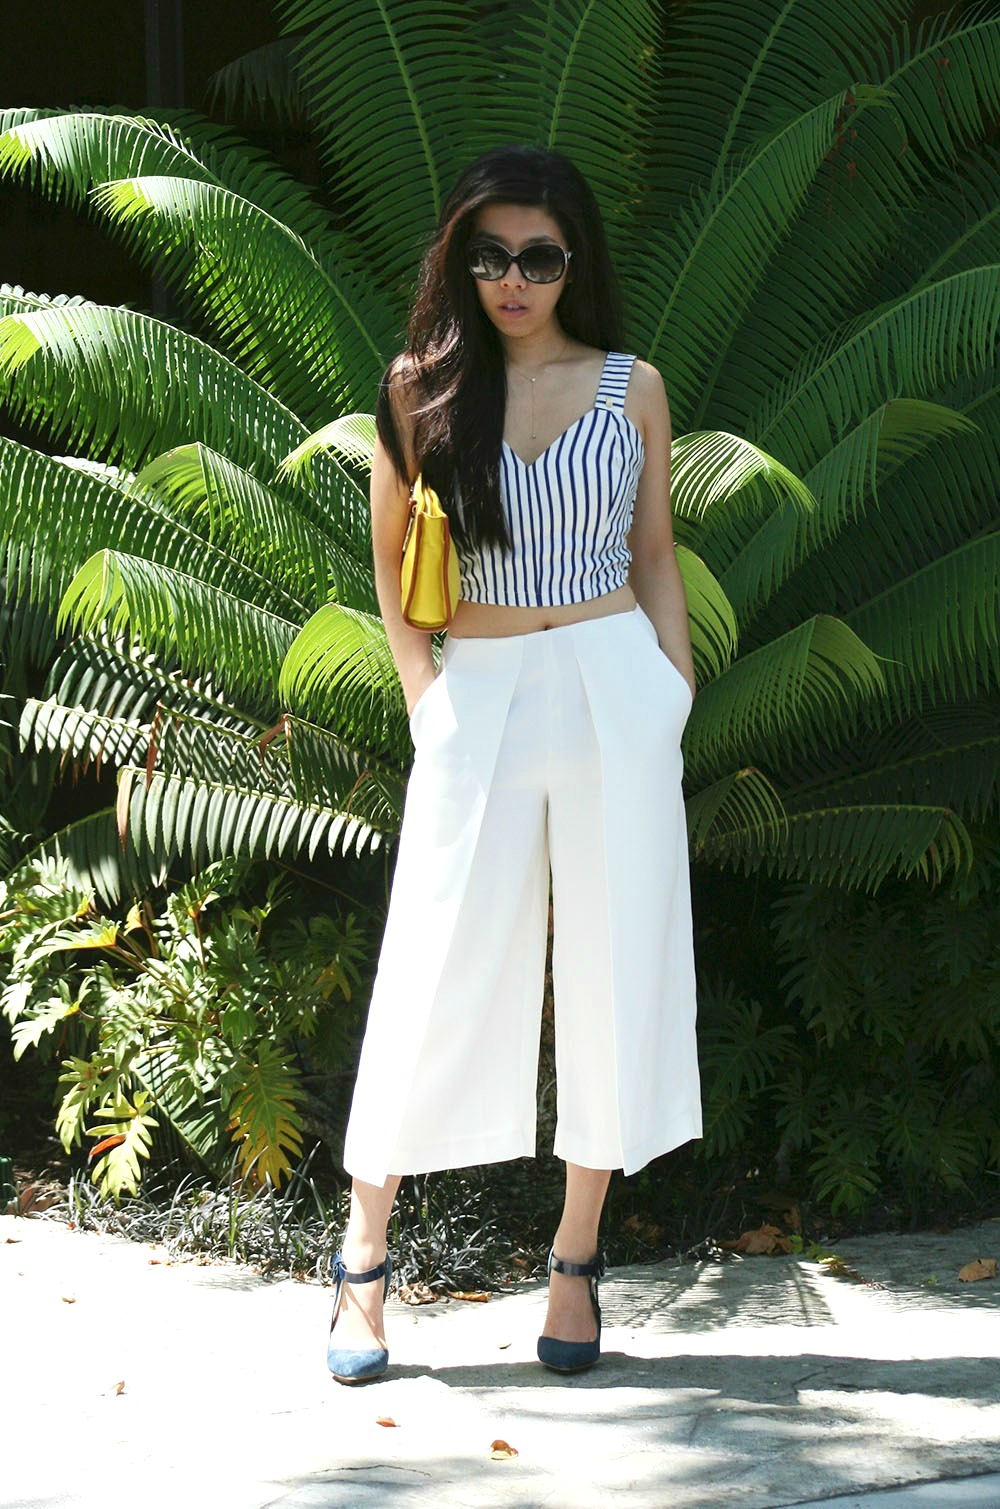 Adrienne Nguyen_Fashion Blogger from California_SD Blogger_Summer Outfit_Blue and White Striped Crop Top with Zipper and Bow